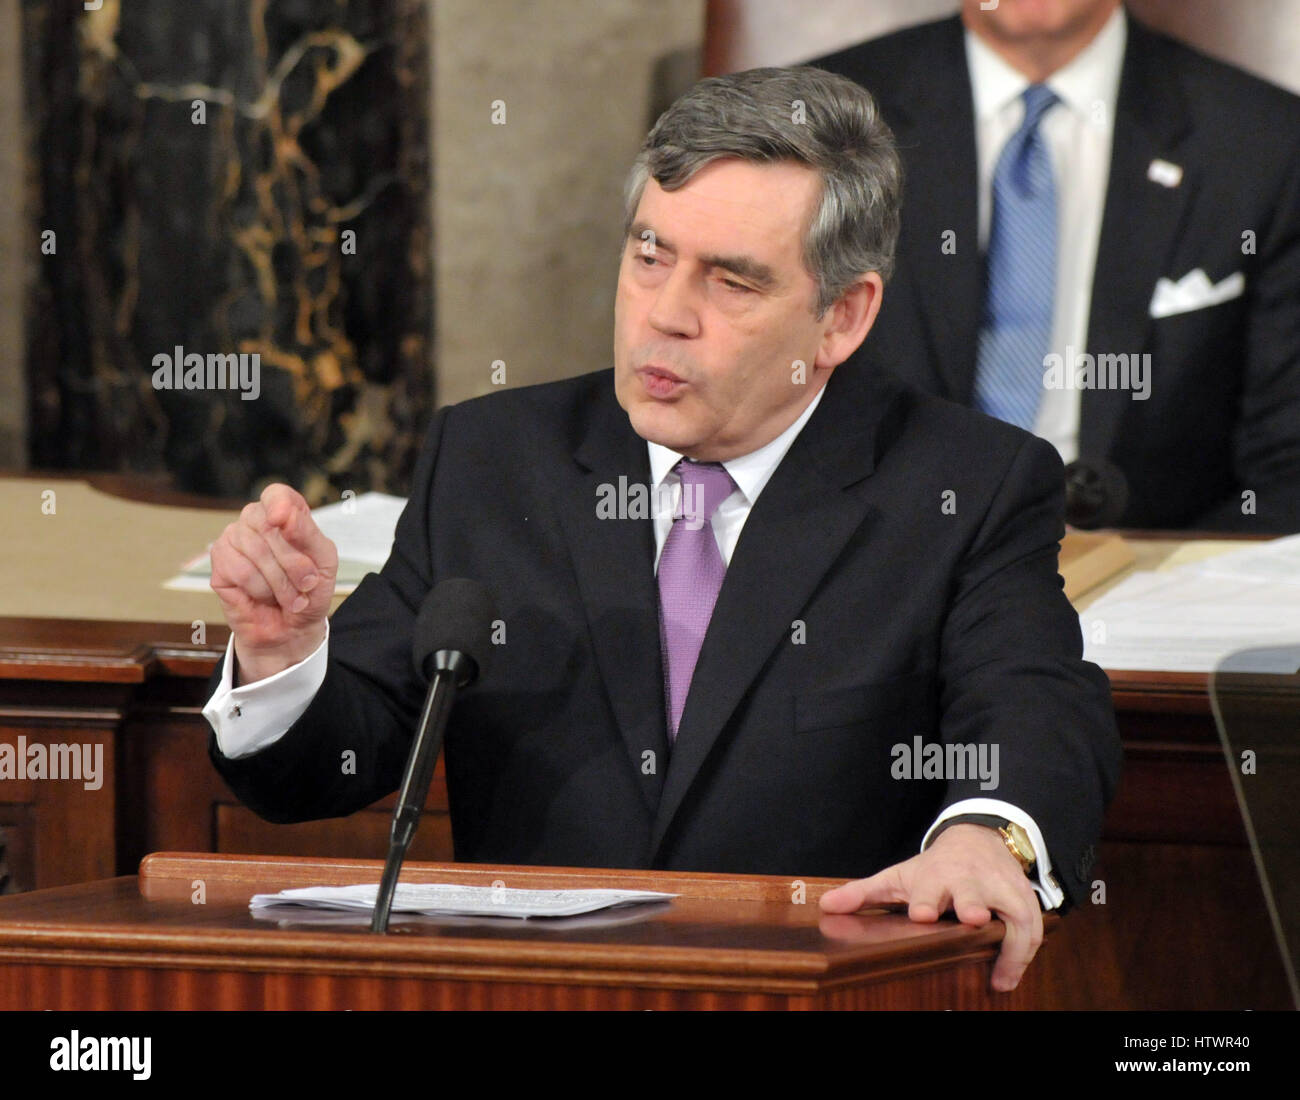 Washington, DC - March 4, 2009 -- The Right Honorable Gordon Brown, M.P., Prime Minister of the United Kingdom, - Stock Image